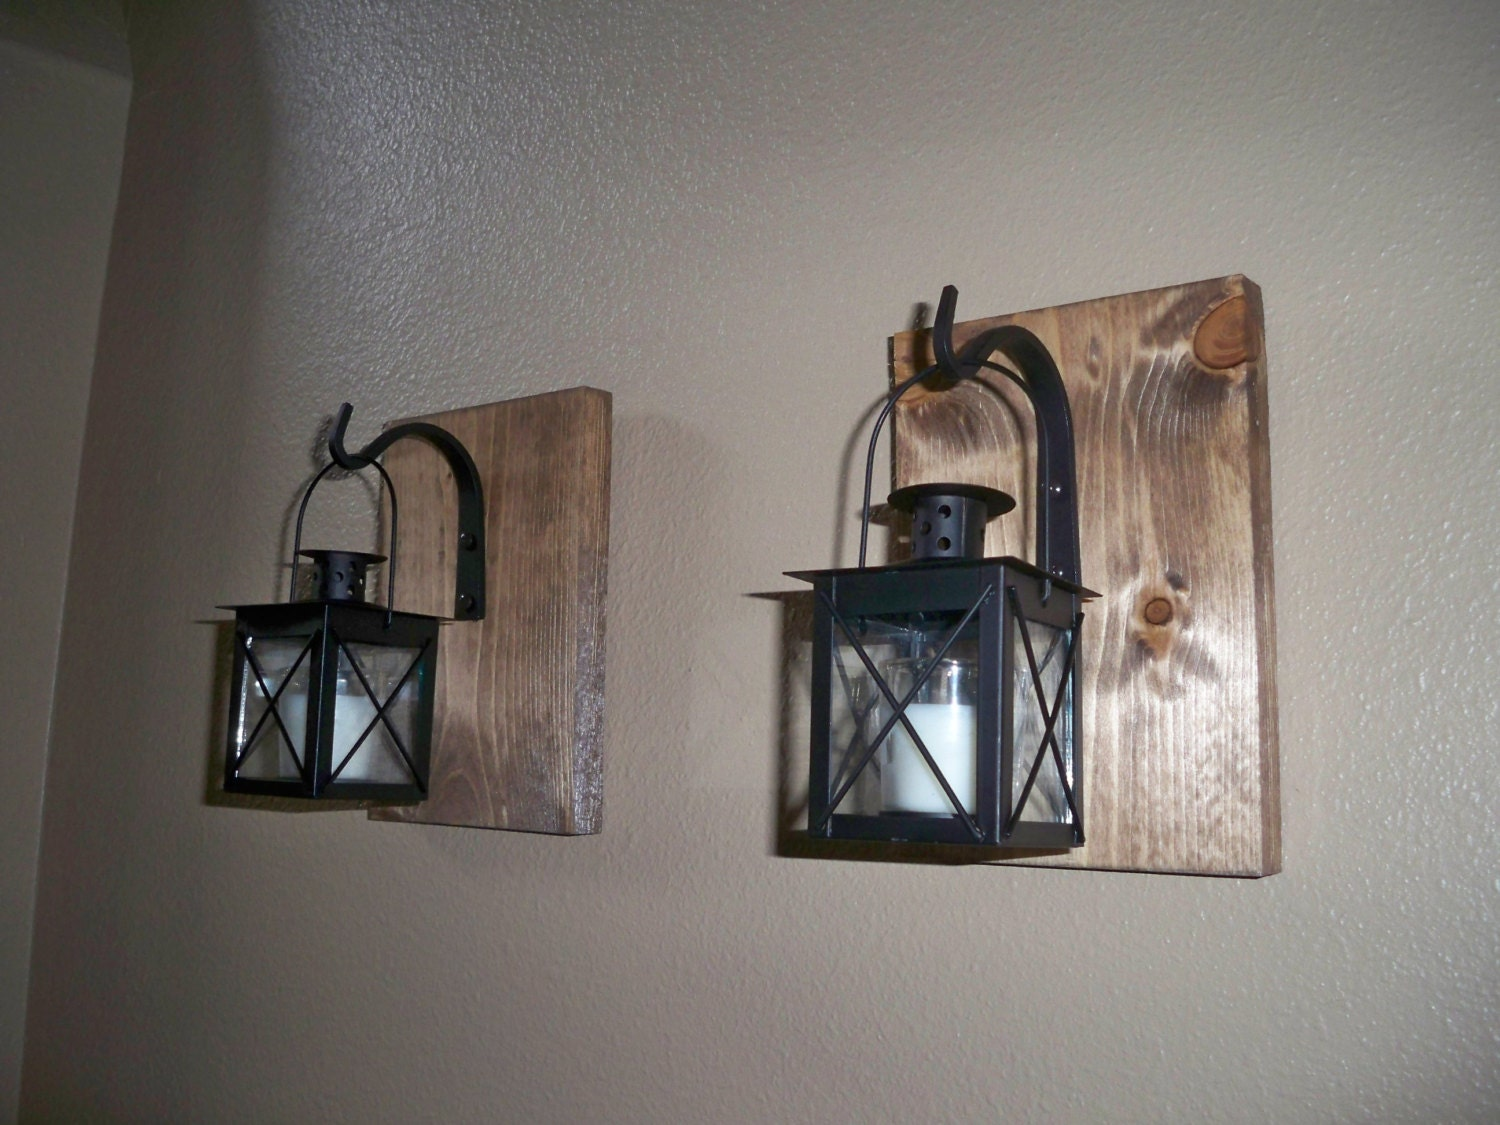 Wrought Iron Sconces Wall Decor : BLACK LANTERN set wall decor housewarming gift wrought iron